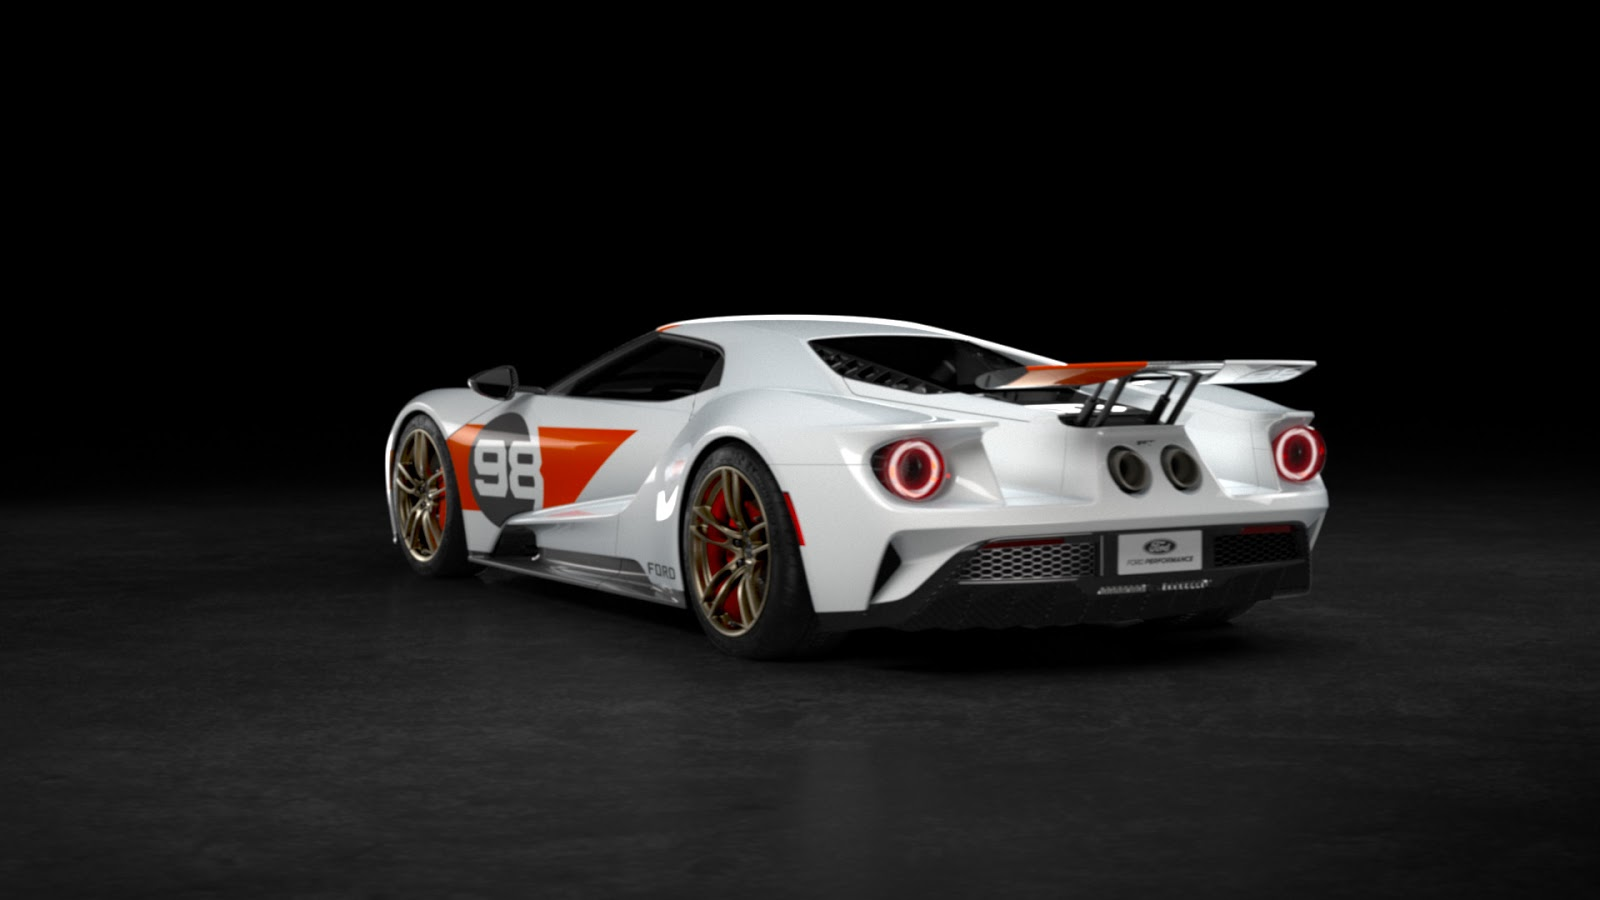 2021 Ford GT Heritage Edition 12 Η πρώτη έκδοση Heritage Edition του Ford GT και η μοναδική έκδοση, Studio Collection